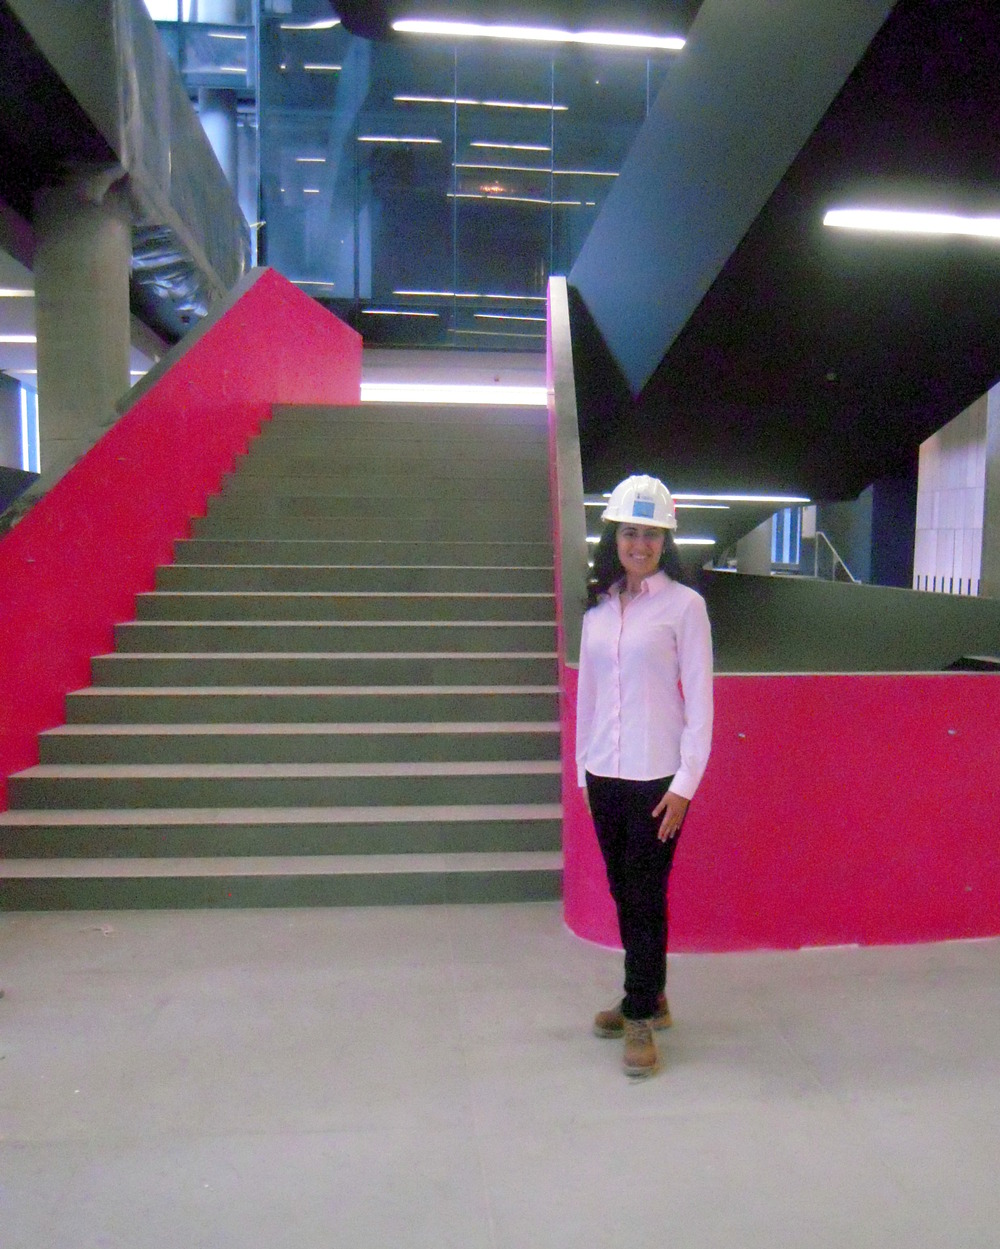 Rocking my hard hat and boots during my sneak-peek tour of Rotman's New Building!